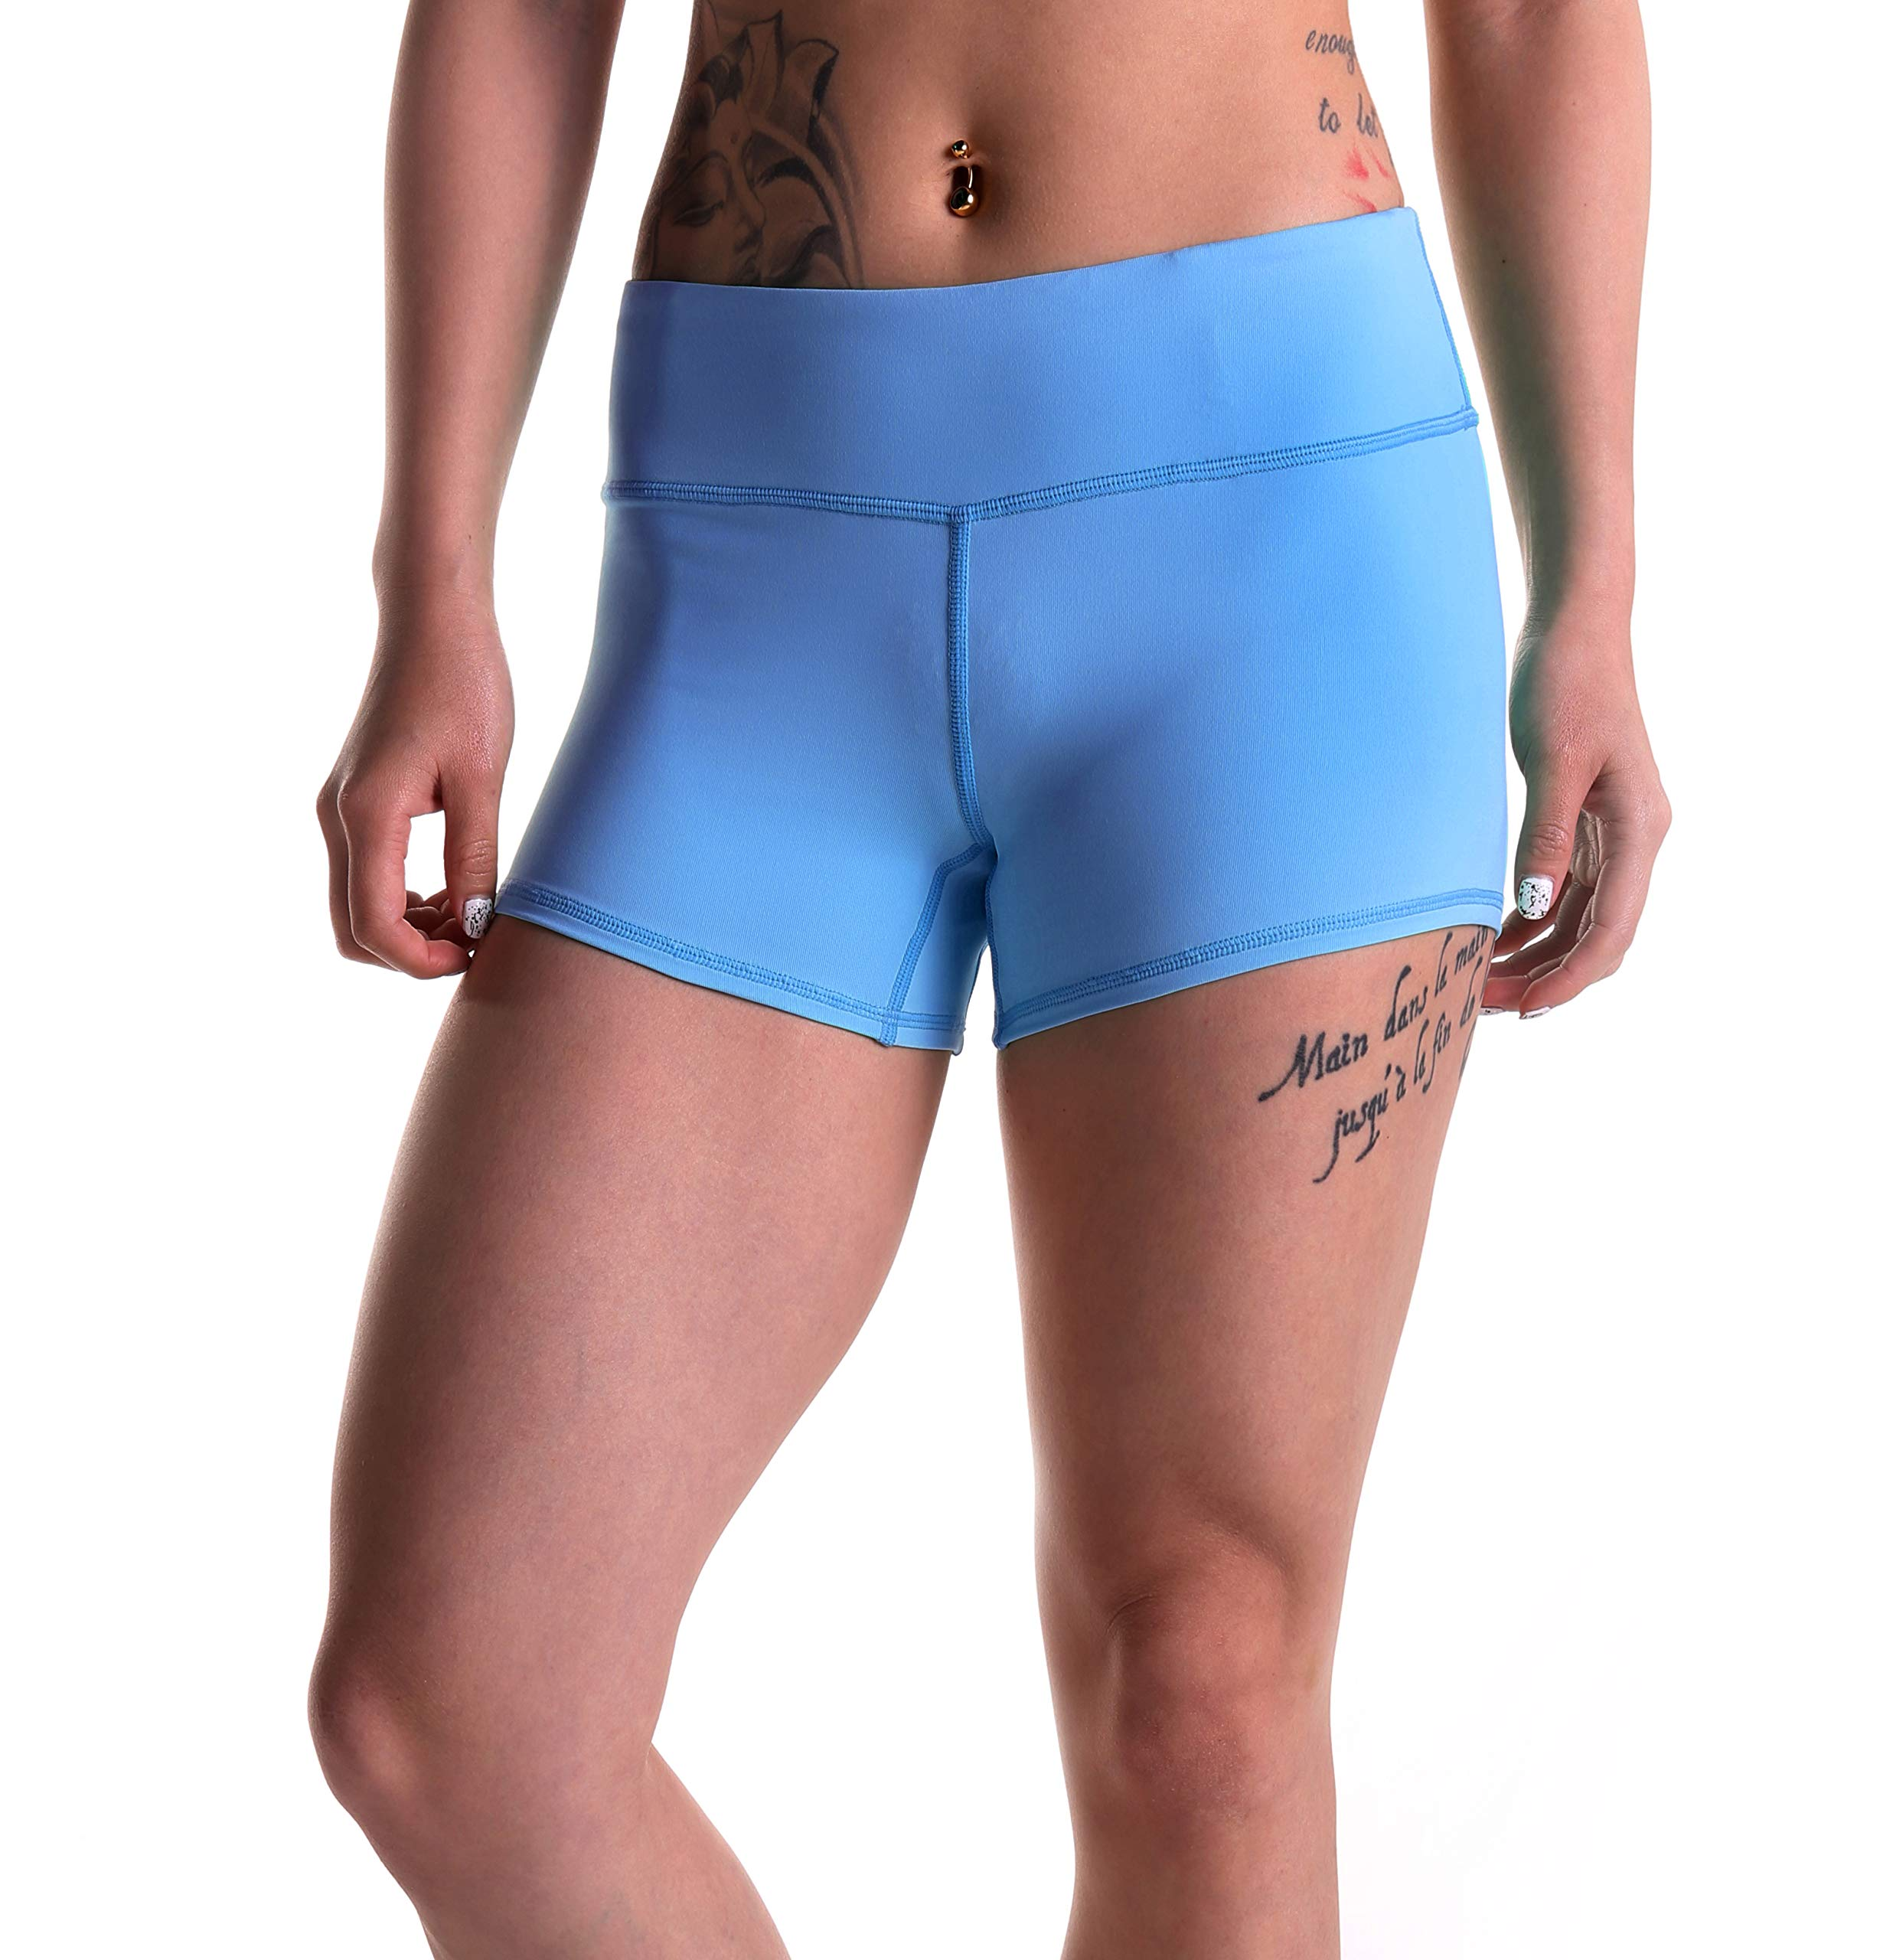 Tough Mode Womens 3'' Compression WOD Athletic Shorts Yoga Volleyball Crossfit Running MMA Active Booty Black Red Blue Green... by Tough Mode